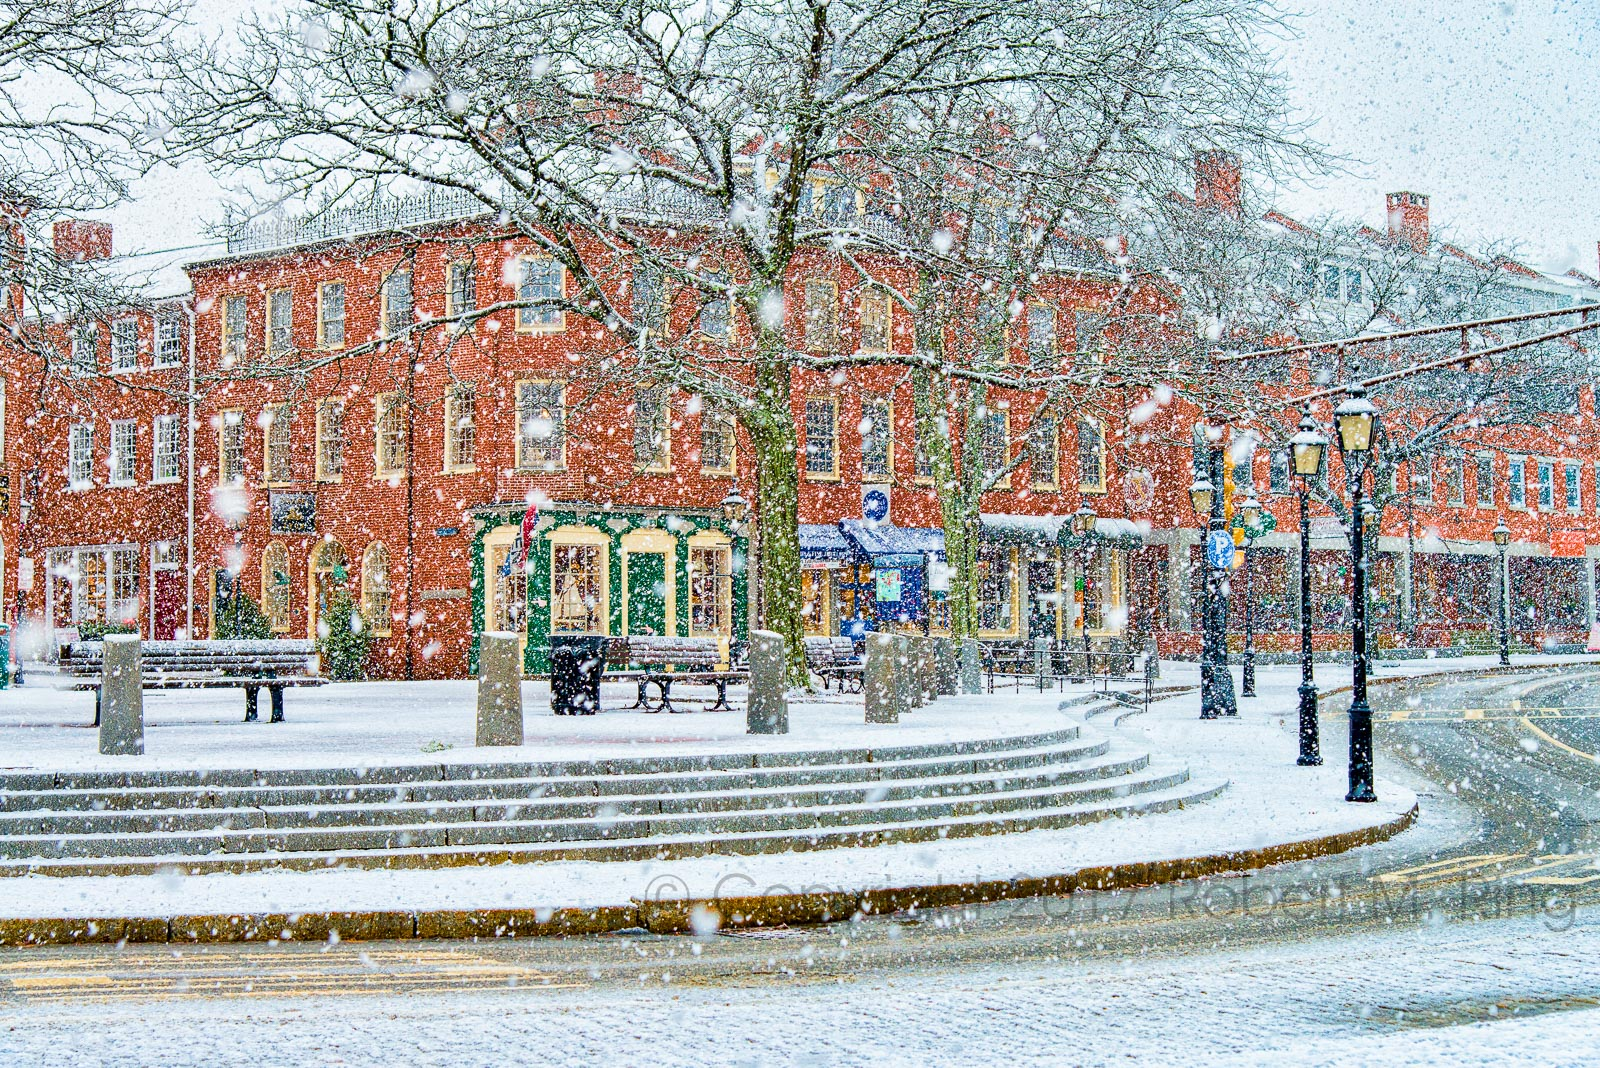 snow, new england, streets, square, photo